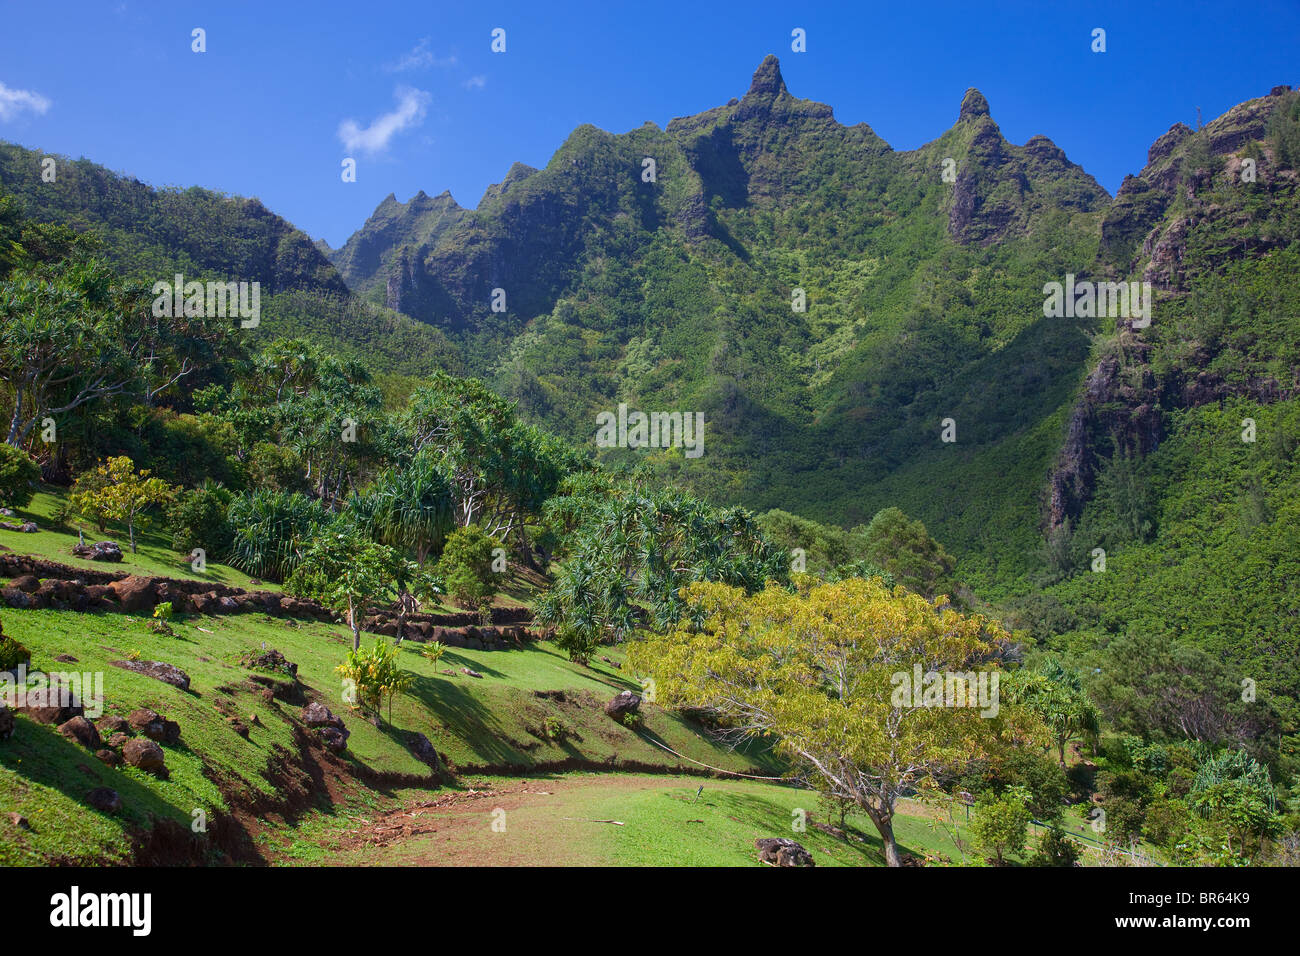 Kauai, HI: Makana mountain towers above the Limahuli Garden, National Tropical Botanical Garden - Stock Image